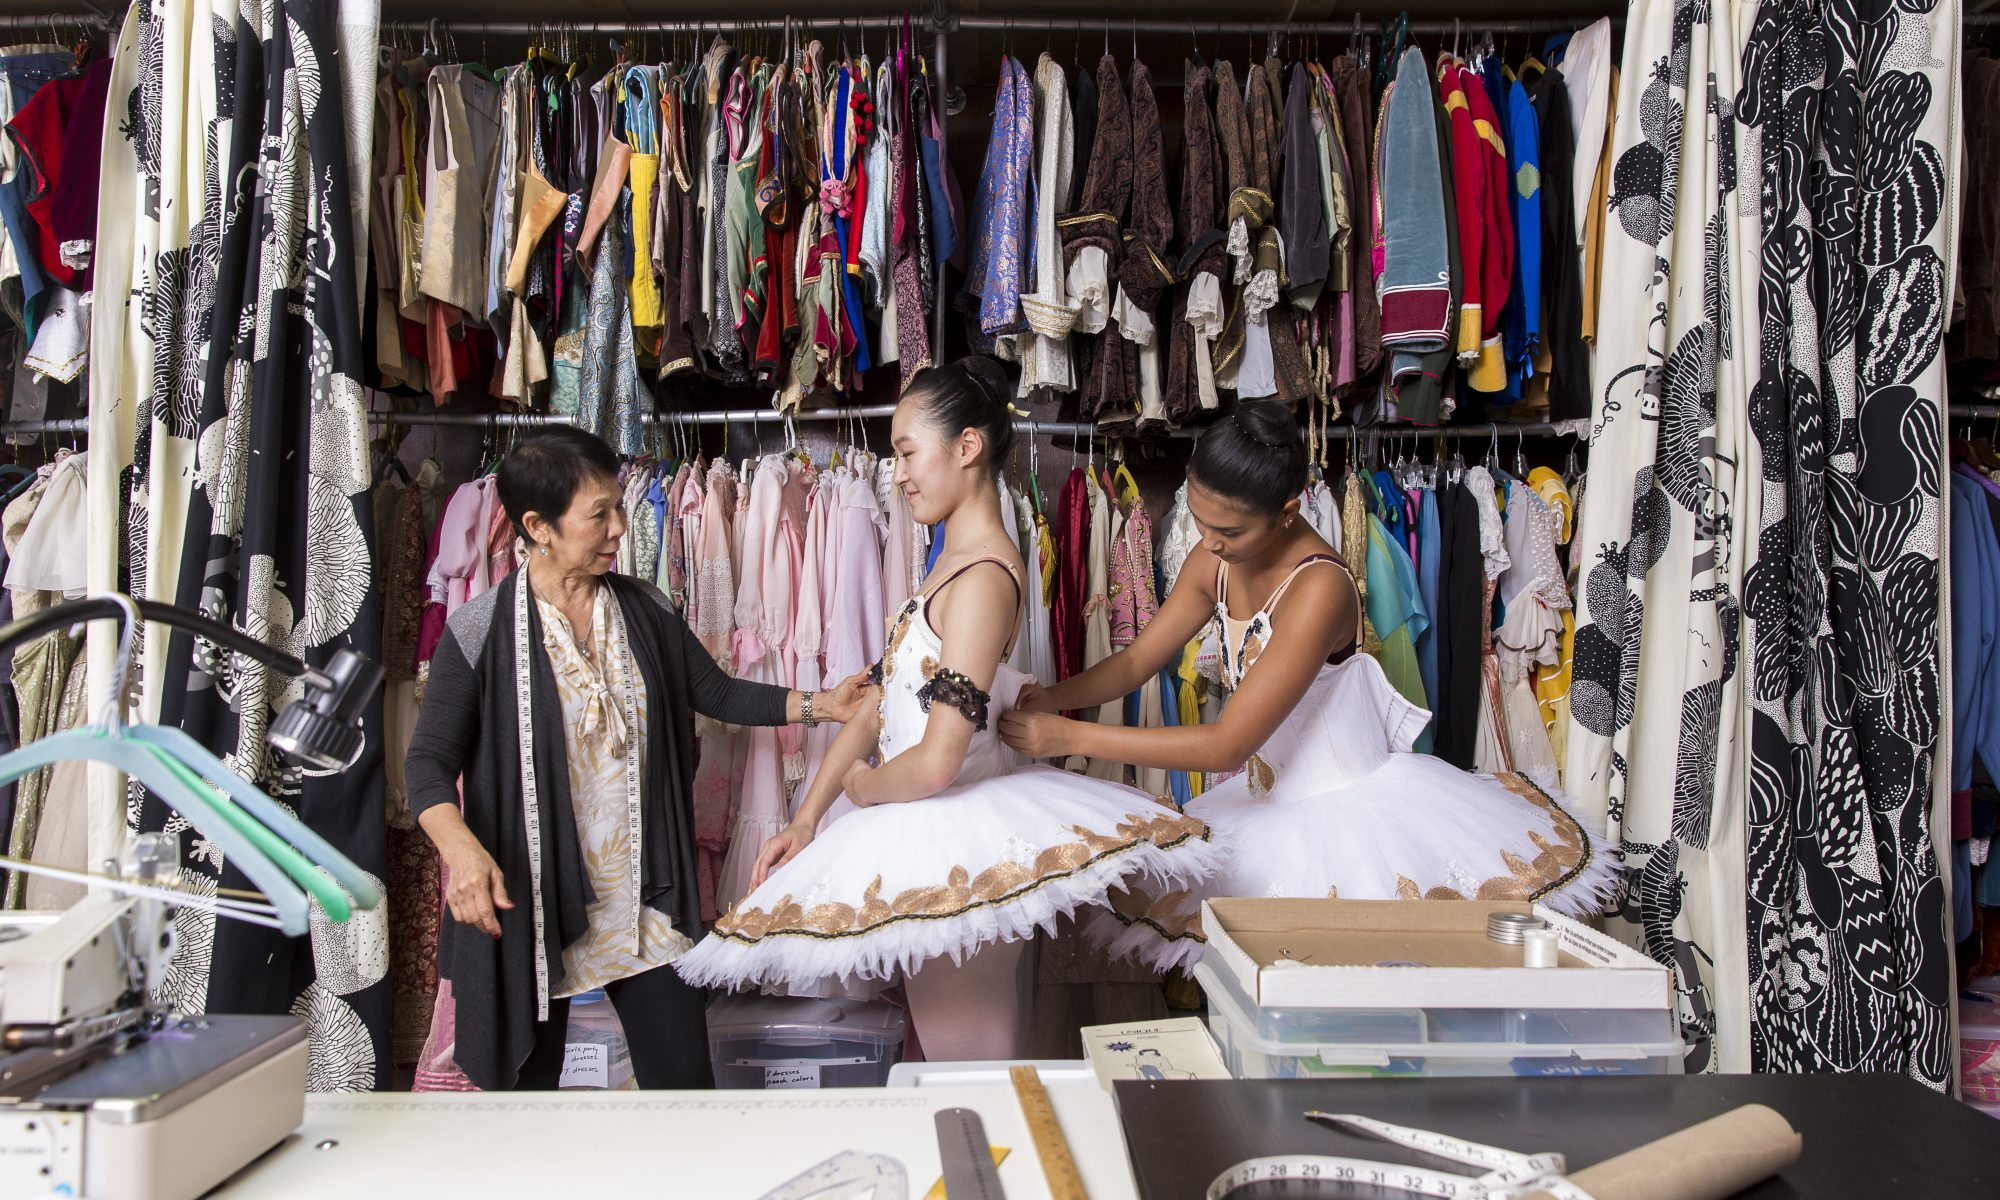 QUYNH'S ROLE AS HEAD OF WARDROBE